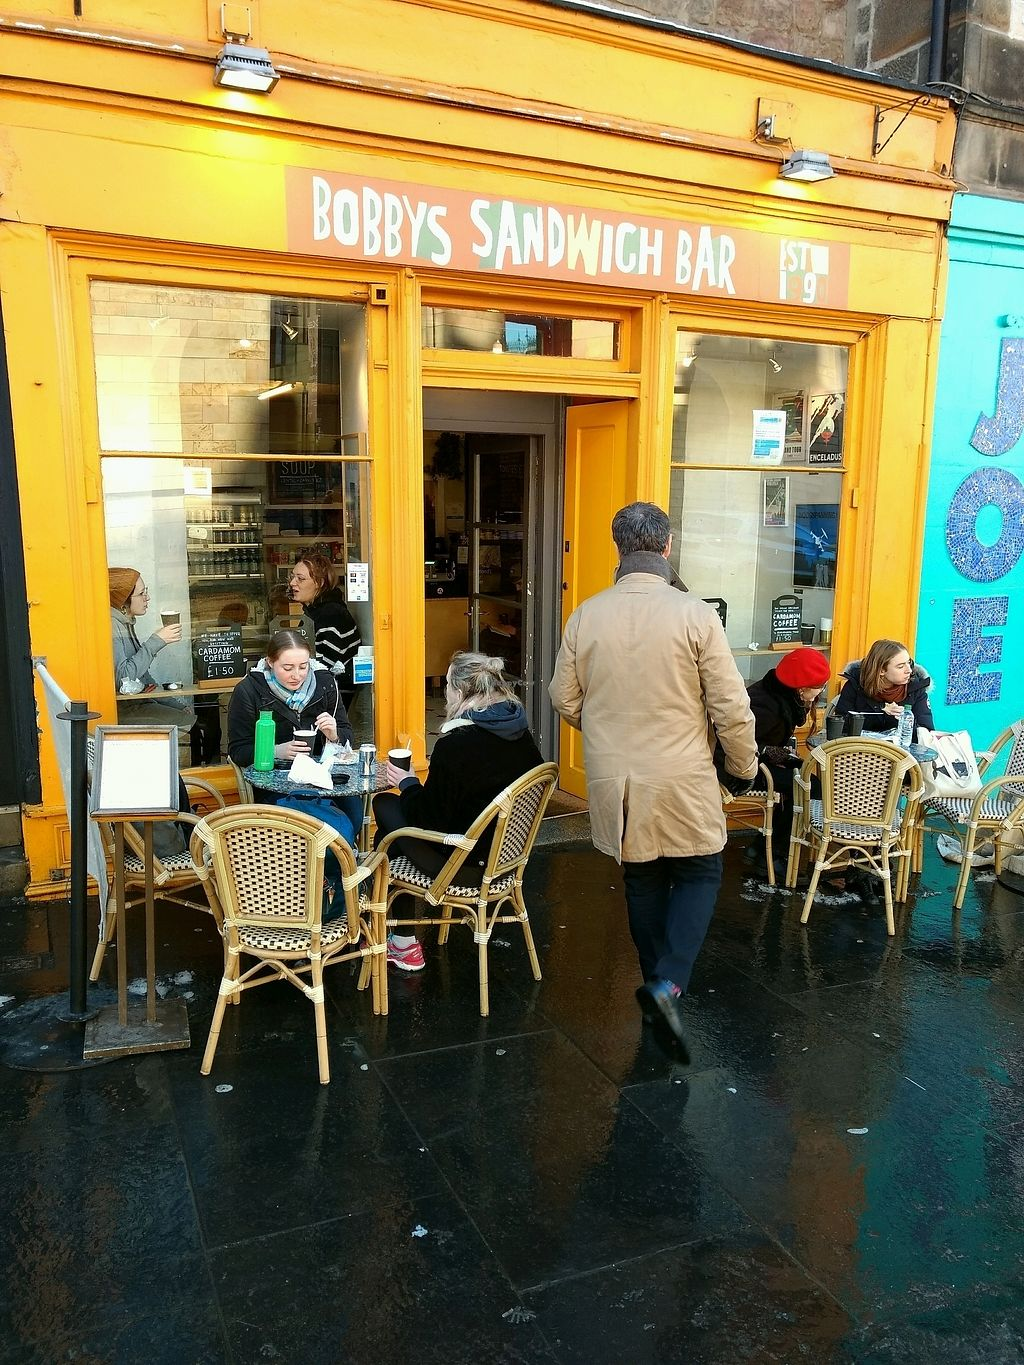 """Photo of Bobby's Sandwich Bar  by <a href=""""/members/profile/craigmc"""">craigmc</a> <br/>outside <br/> January 17, 2018  - <a href='/contact/abuse/image/63522/347628'>Report</a>"""